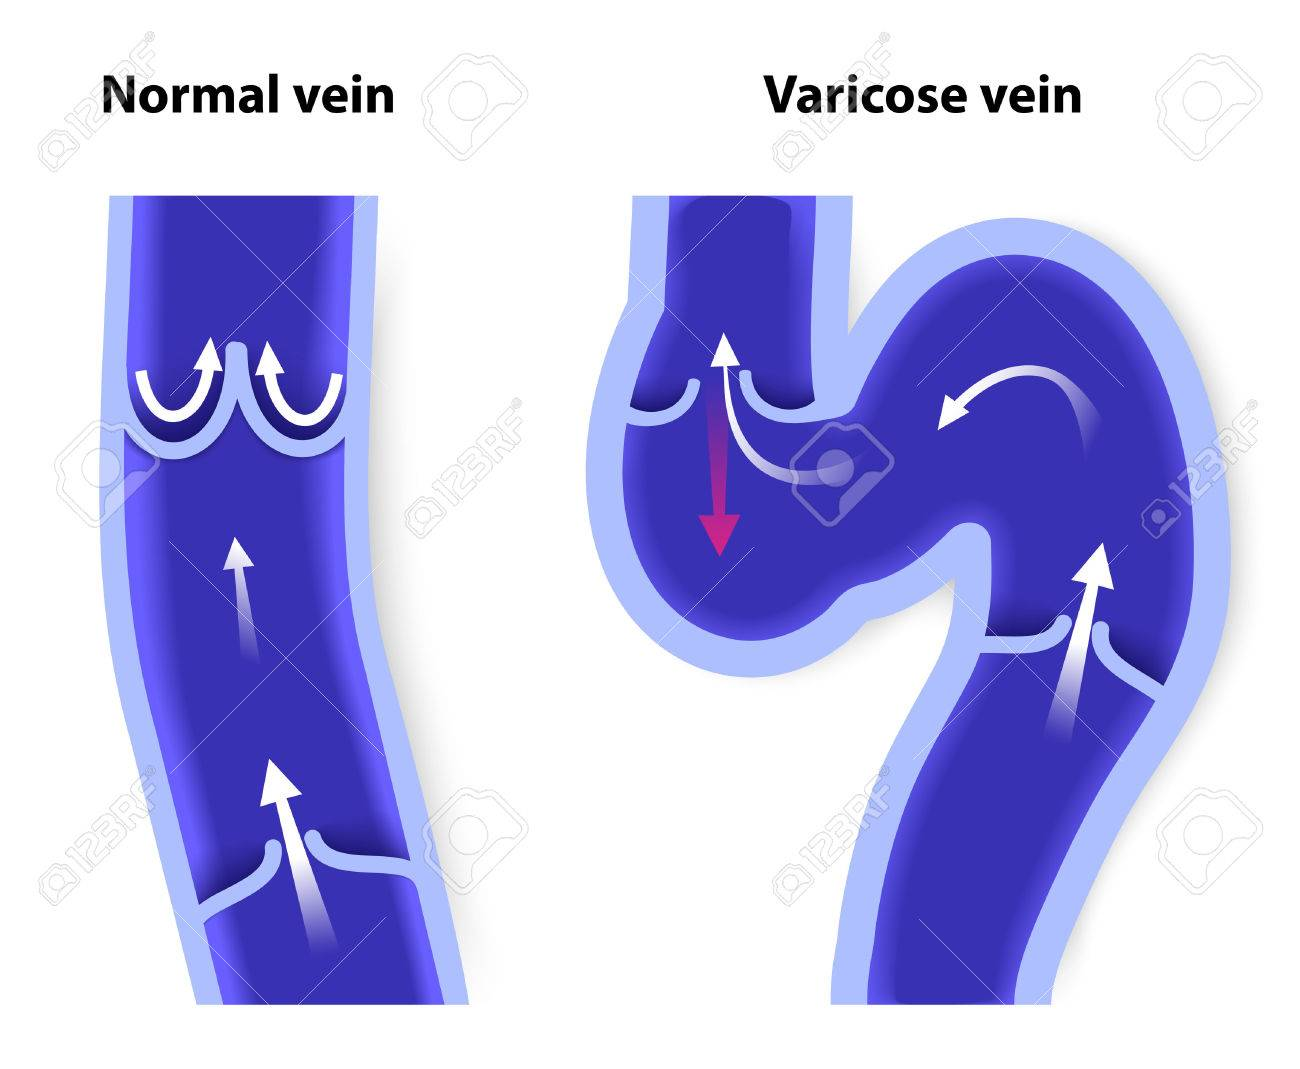 Healthy Vein And Varicose Vein Human Veins Vector Diagram Royalty